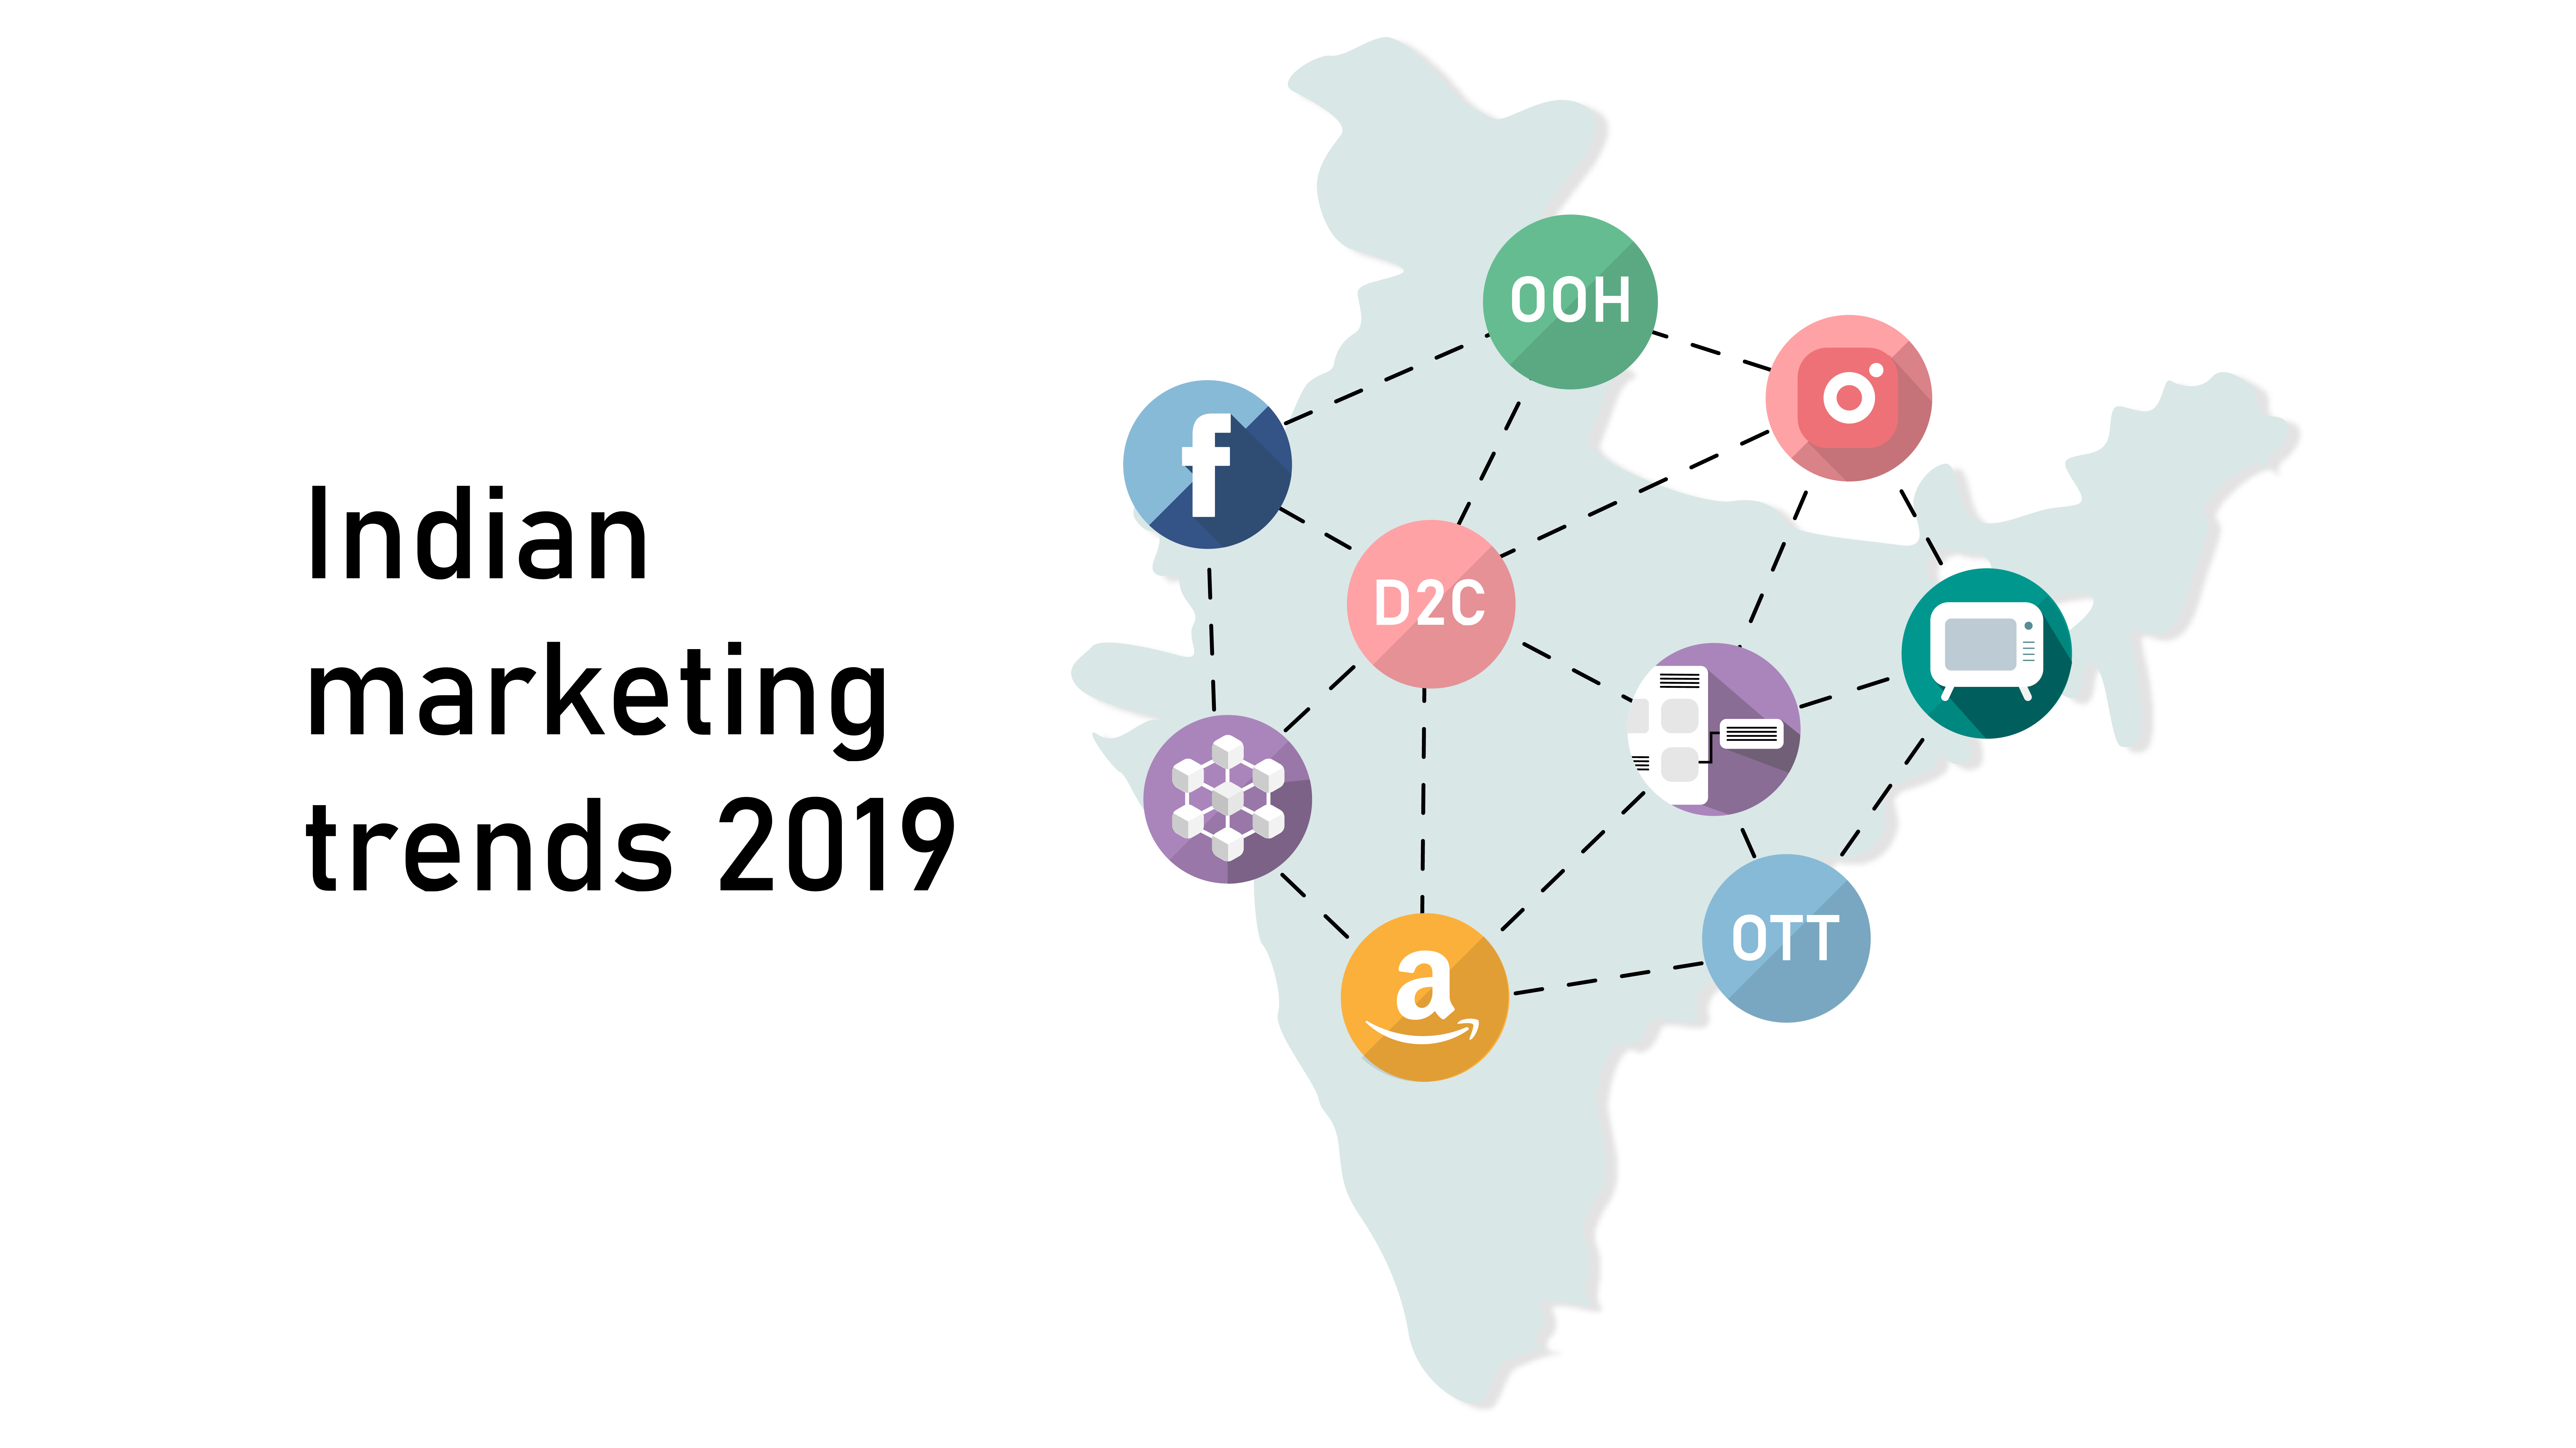 Indian marketig trends, marketing mix, advertising, digital advertizing